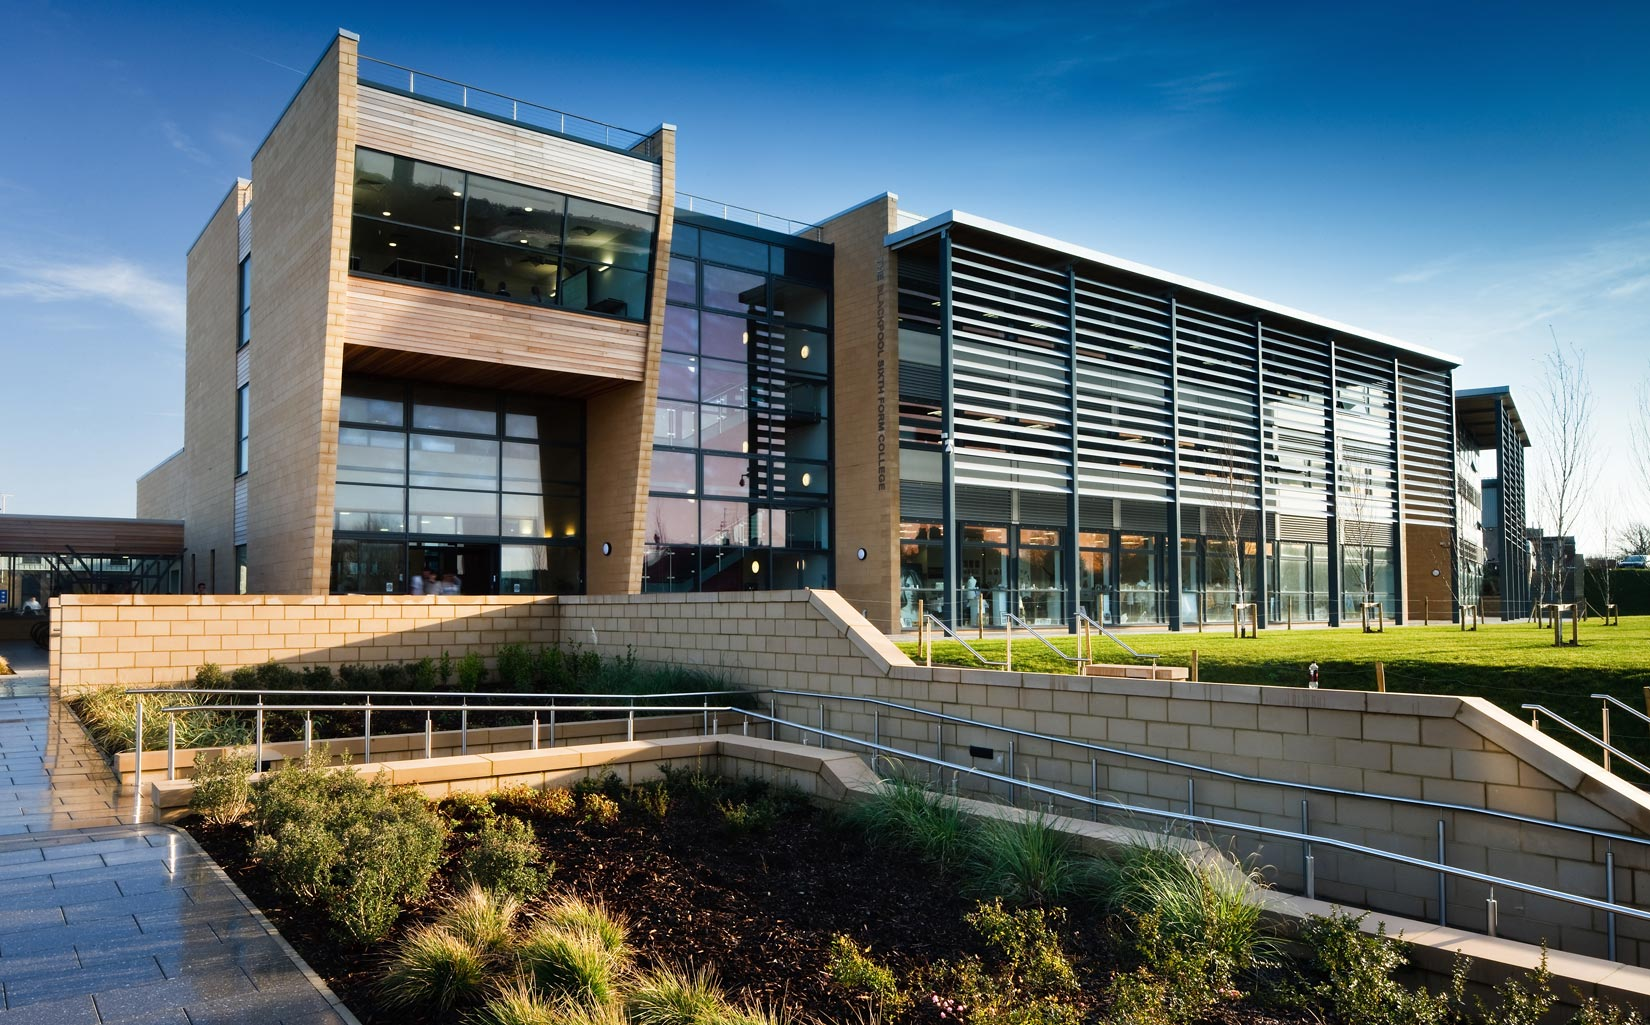 Blackpool Sixth Form College, approach